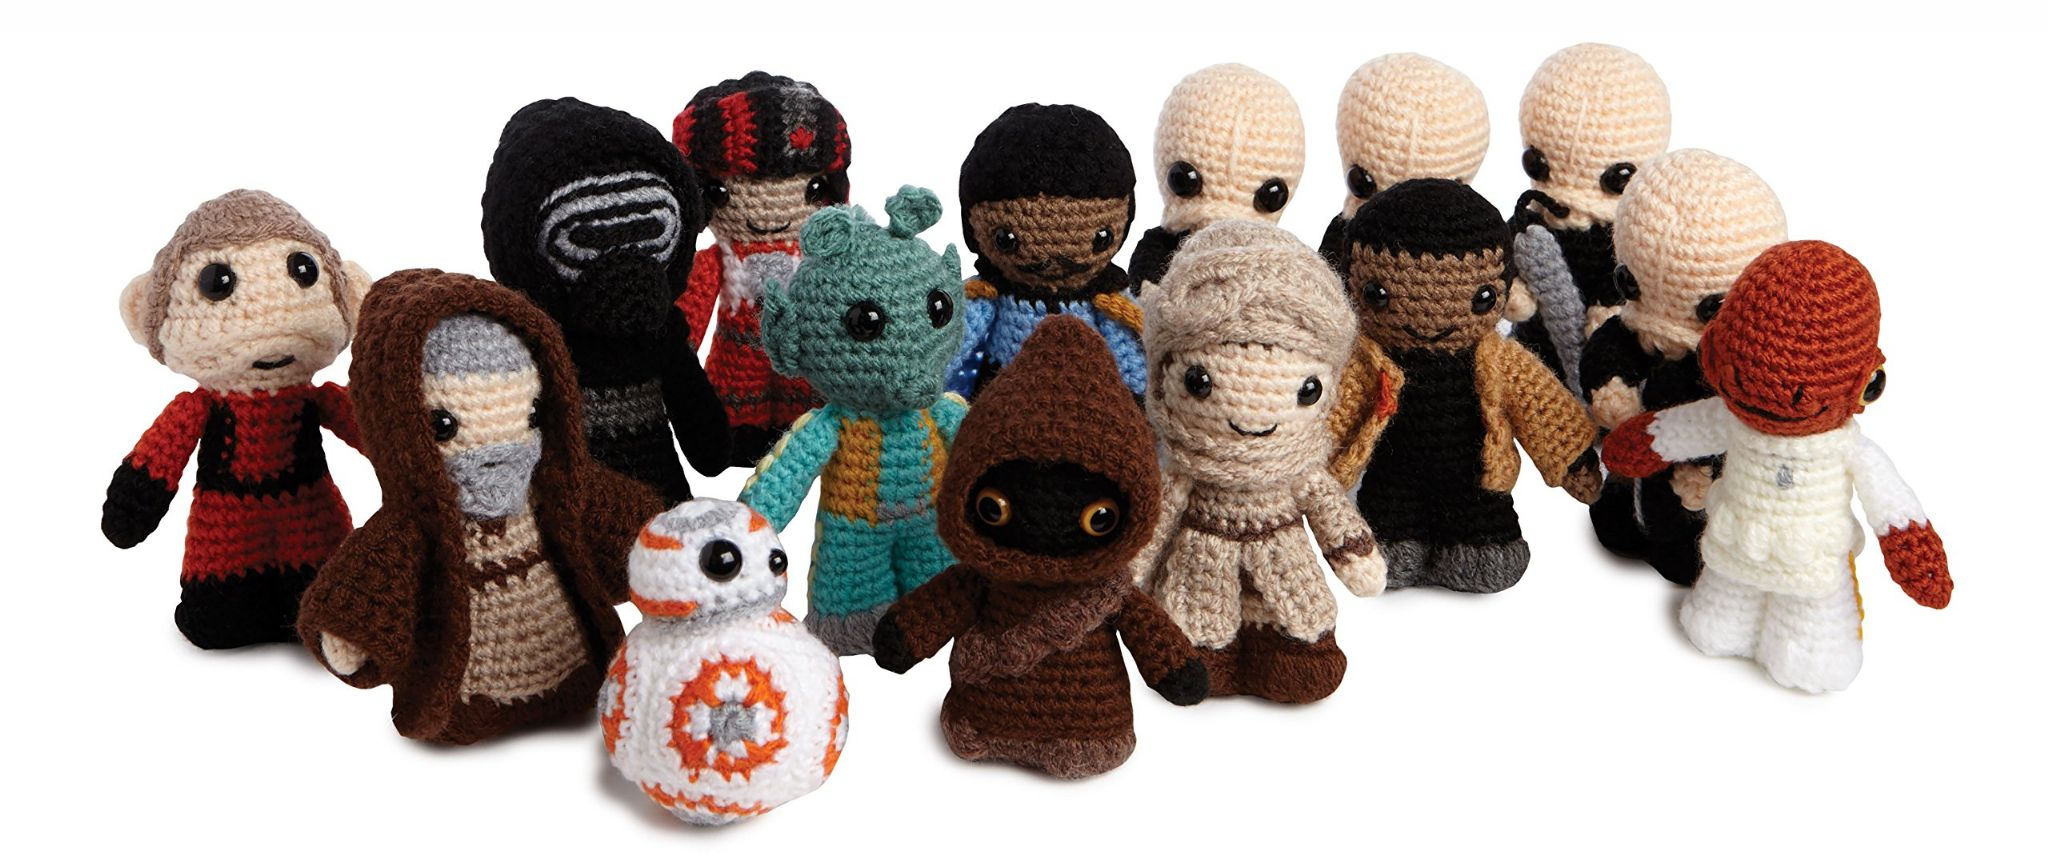 Star Wars Even More Crochet Pack